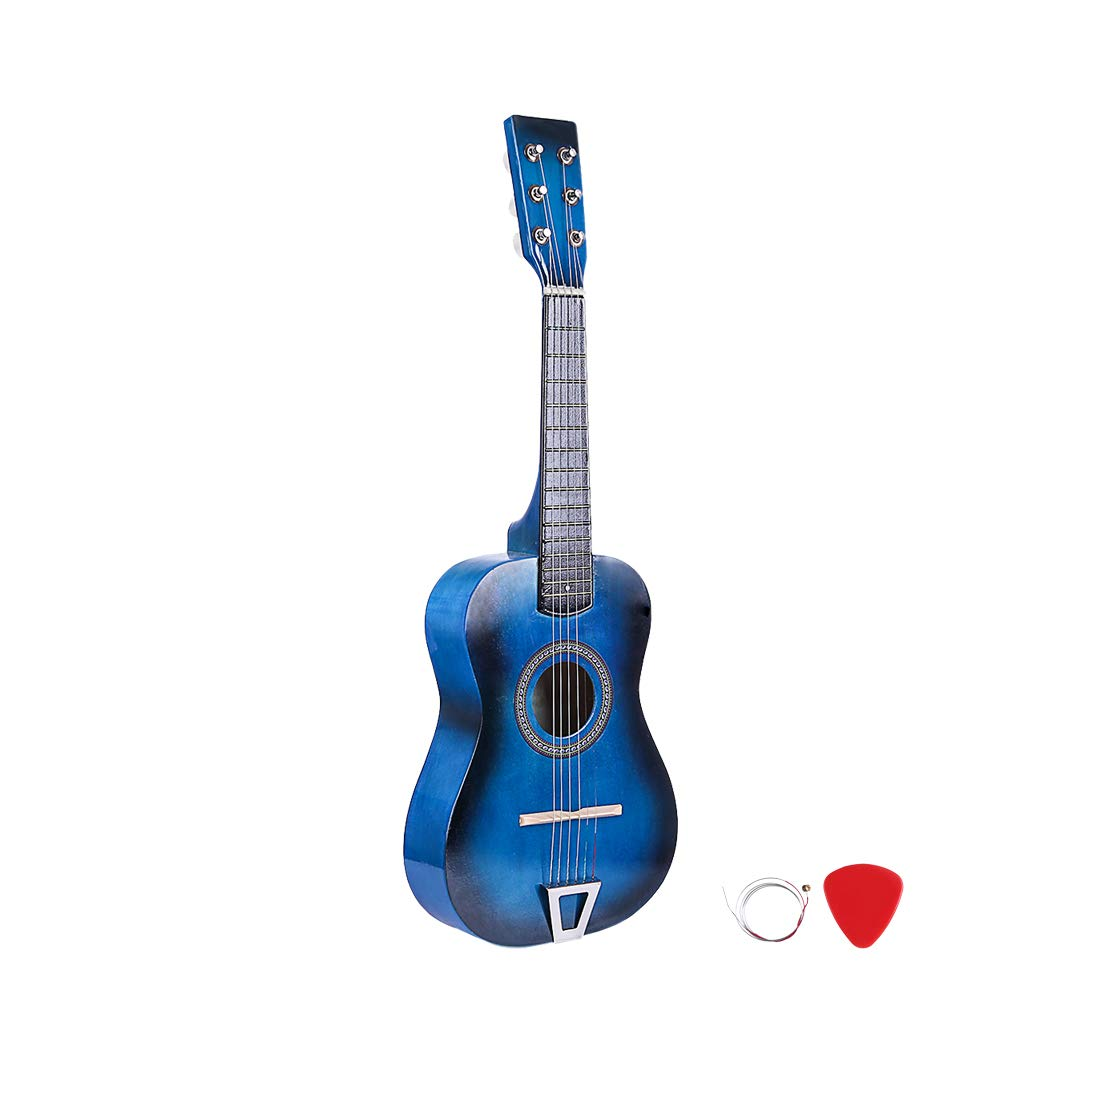 RuiyiF Kids Guitar for Girls Boys 6 Strings, 23 Inch Toddler Toy Acoustic Guitars for Kids Age 3-5 Years Educational Toy (Blue) by RuiyiF